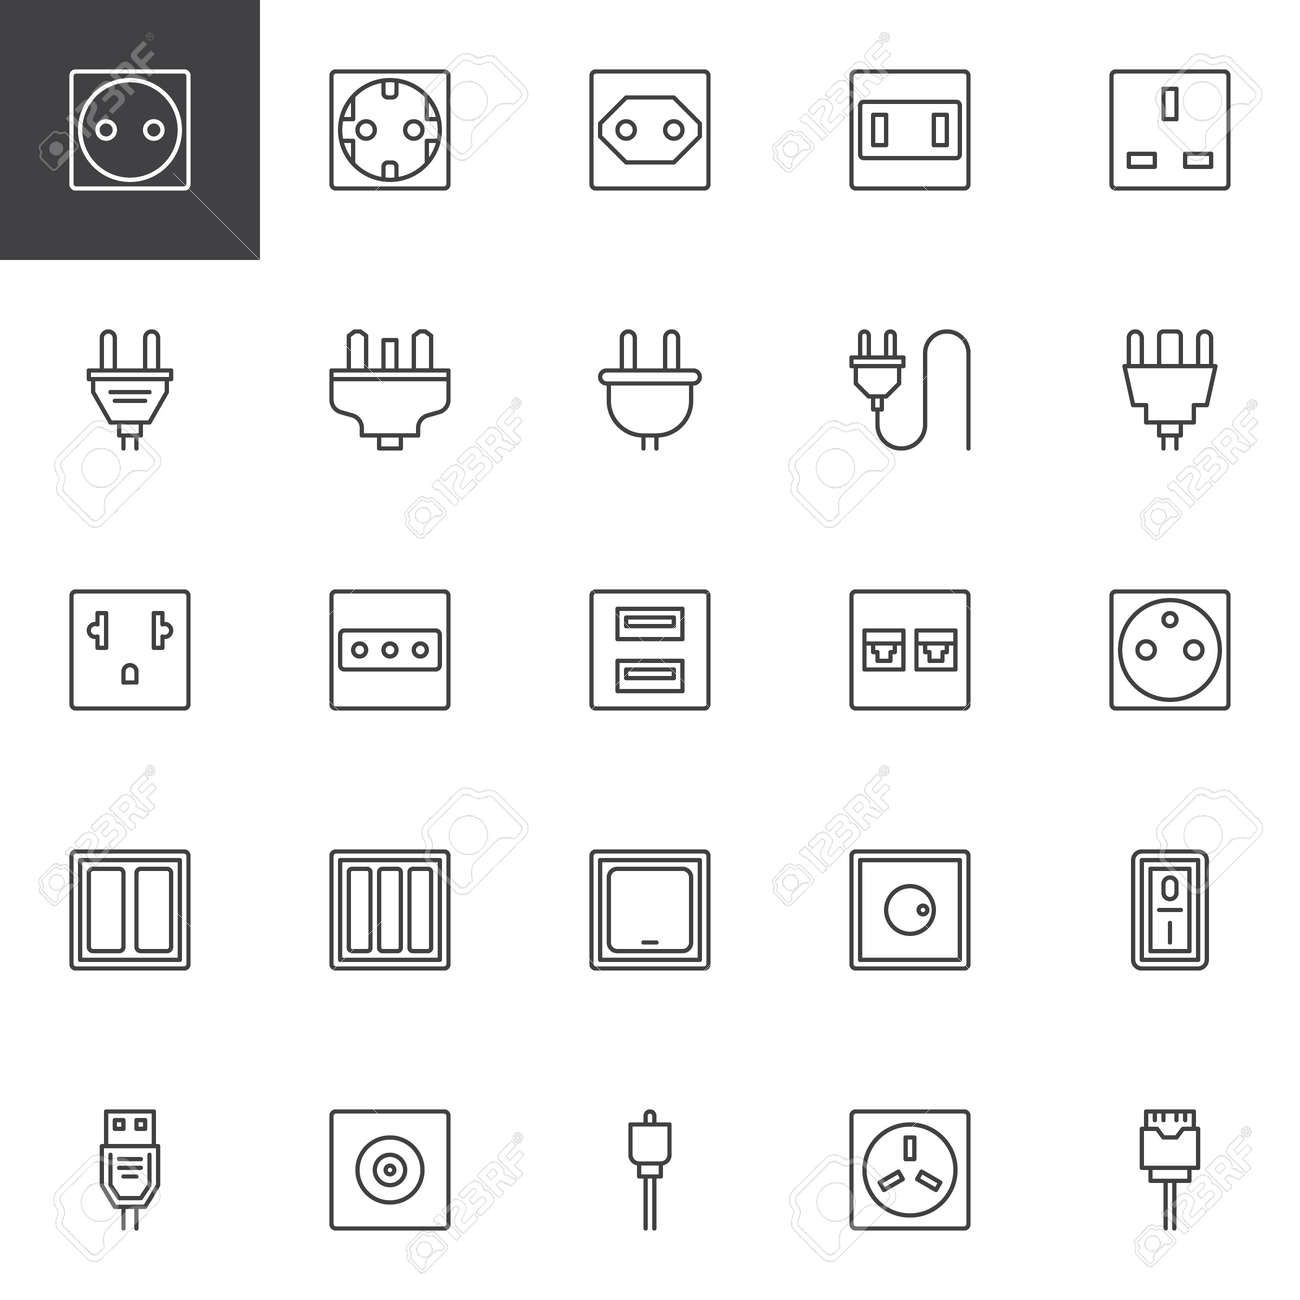 Plug And Socket Types Outline Icons Set Linear Style Symbols Royalty Free Cliparts Vectors And Stock Illustration Image 114458251